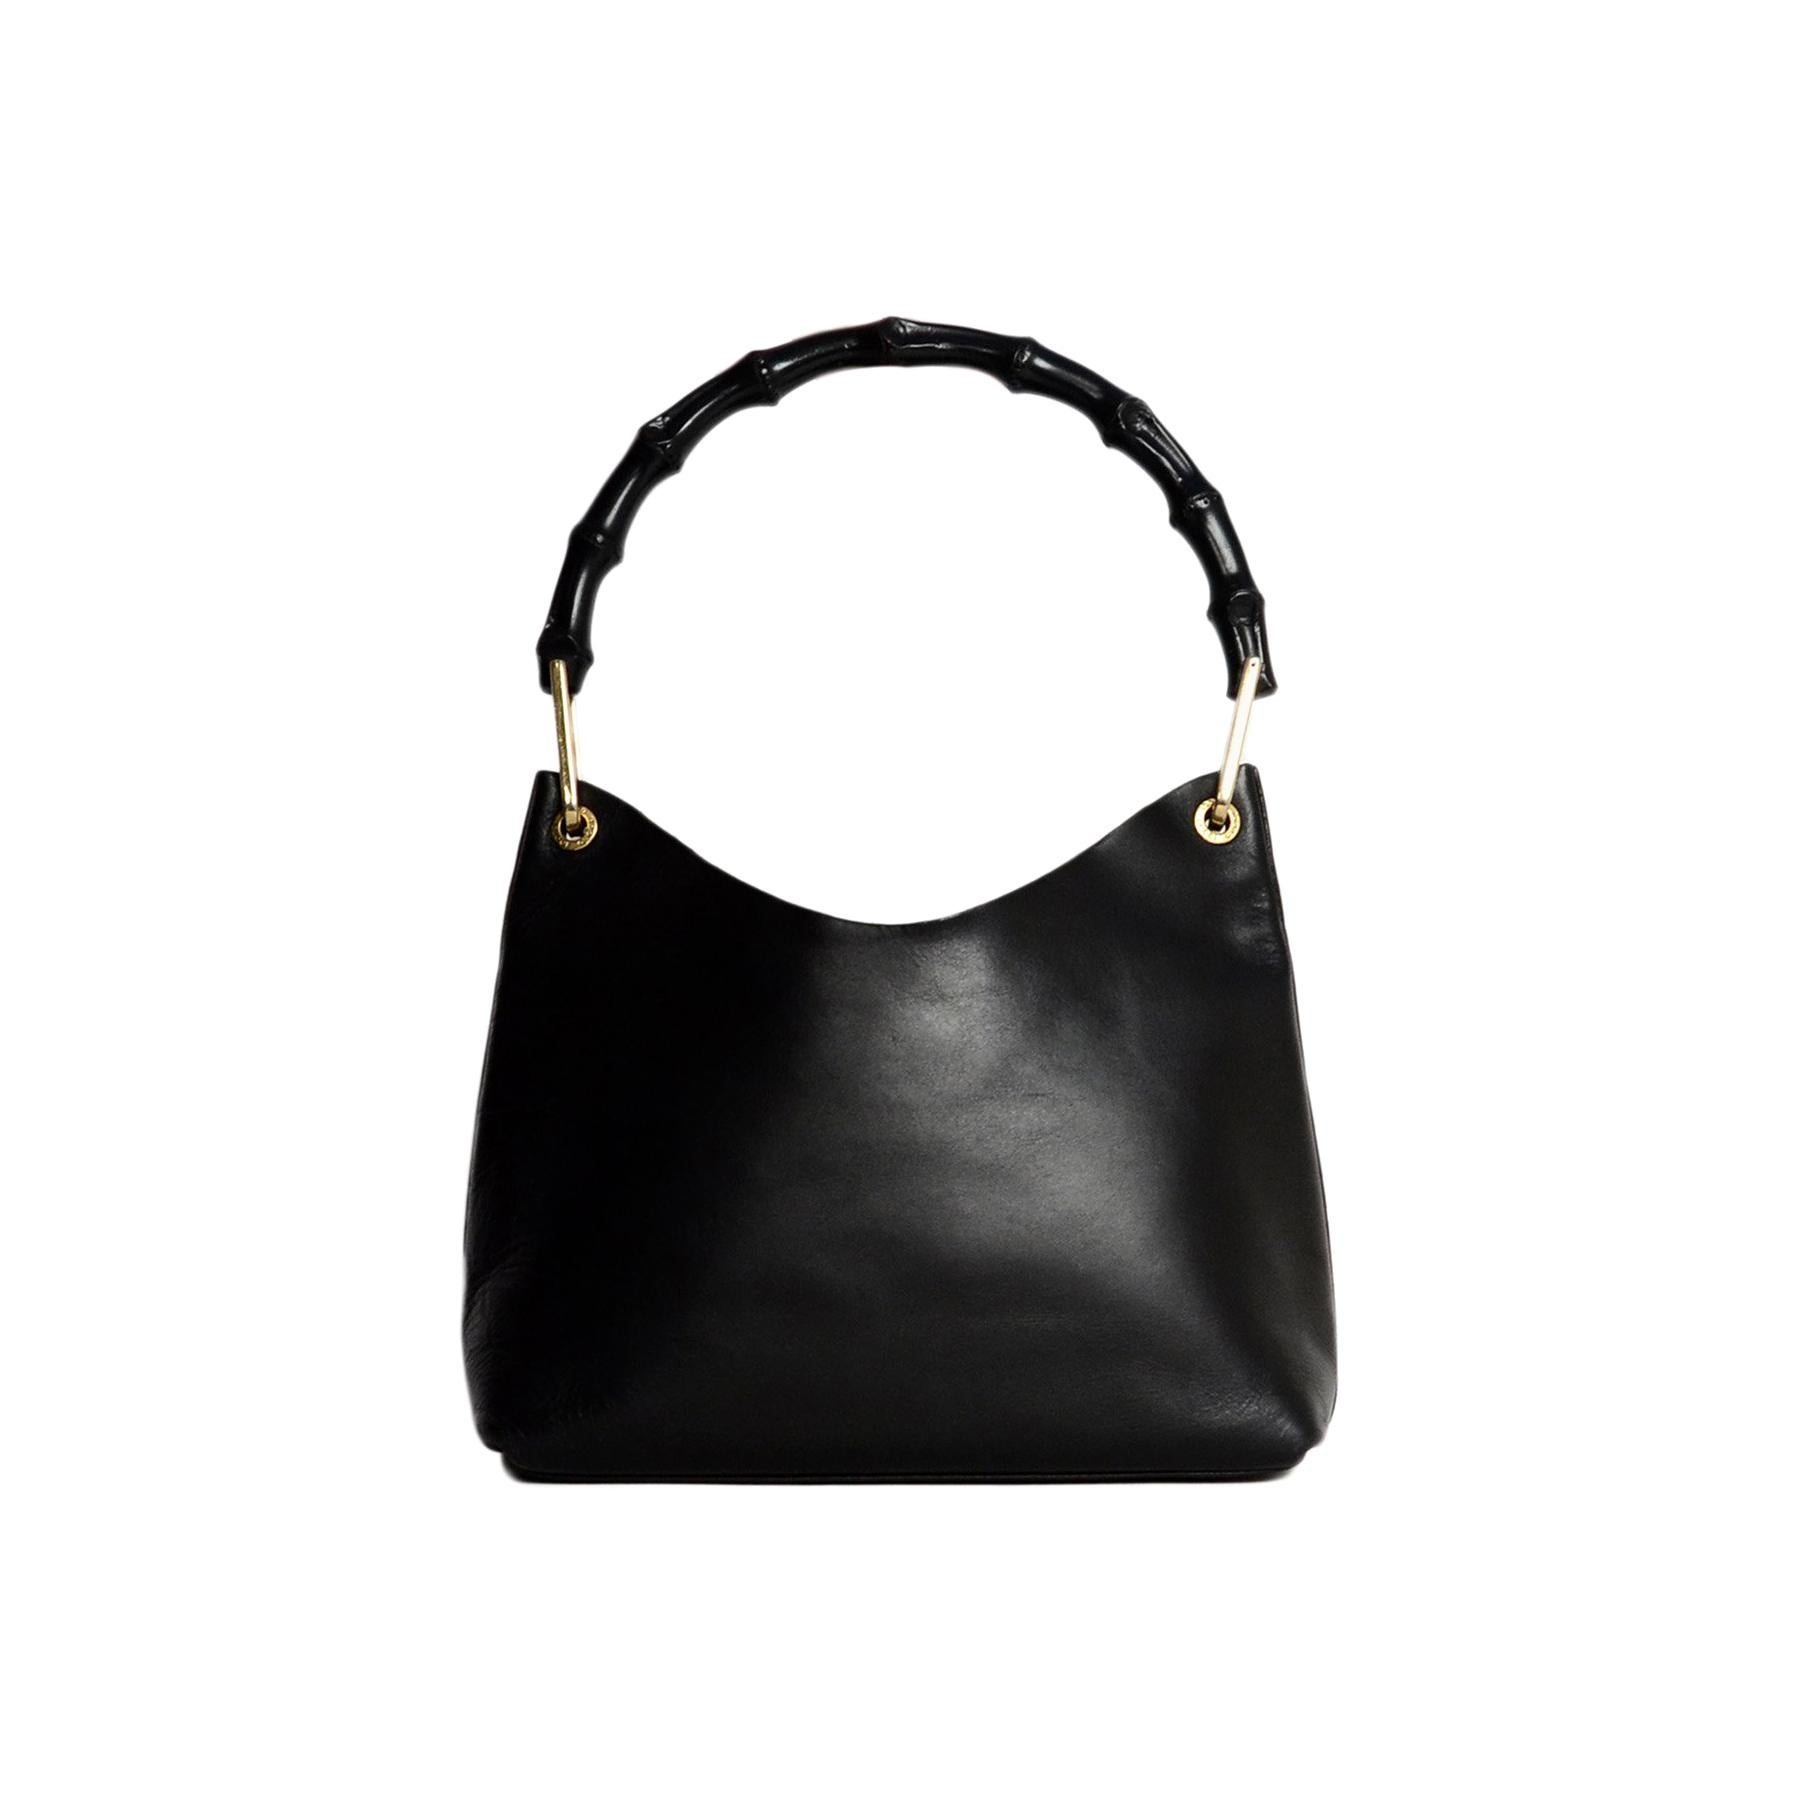 90c810f1935 Gucci Bamboo Bags - 363 For Sale on 1stdibs